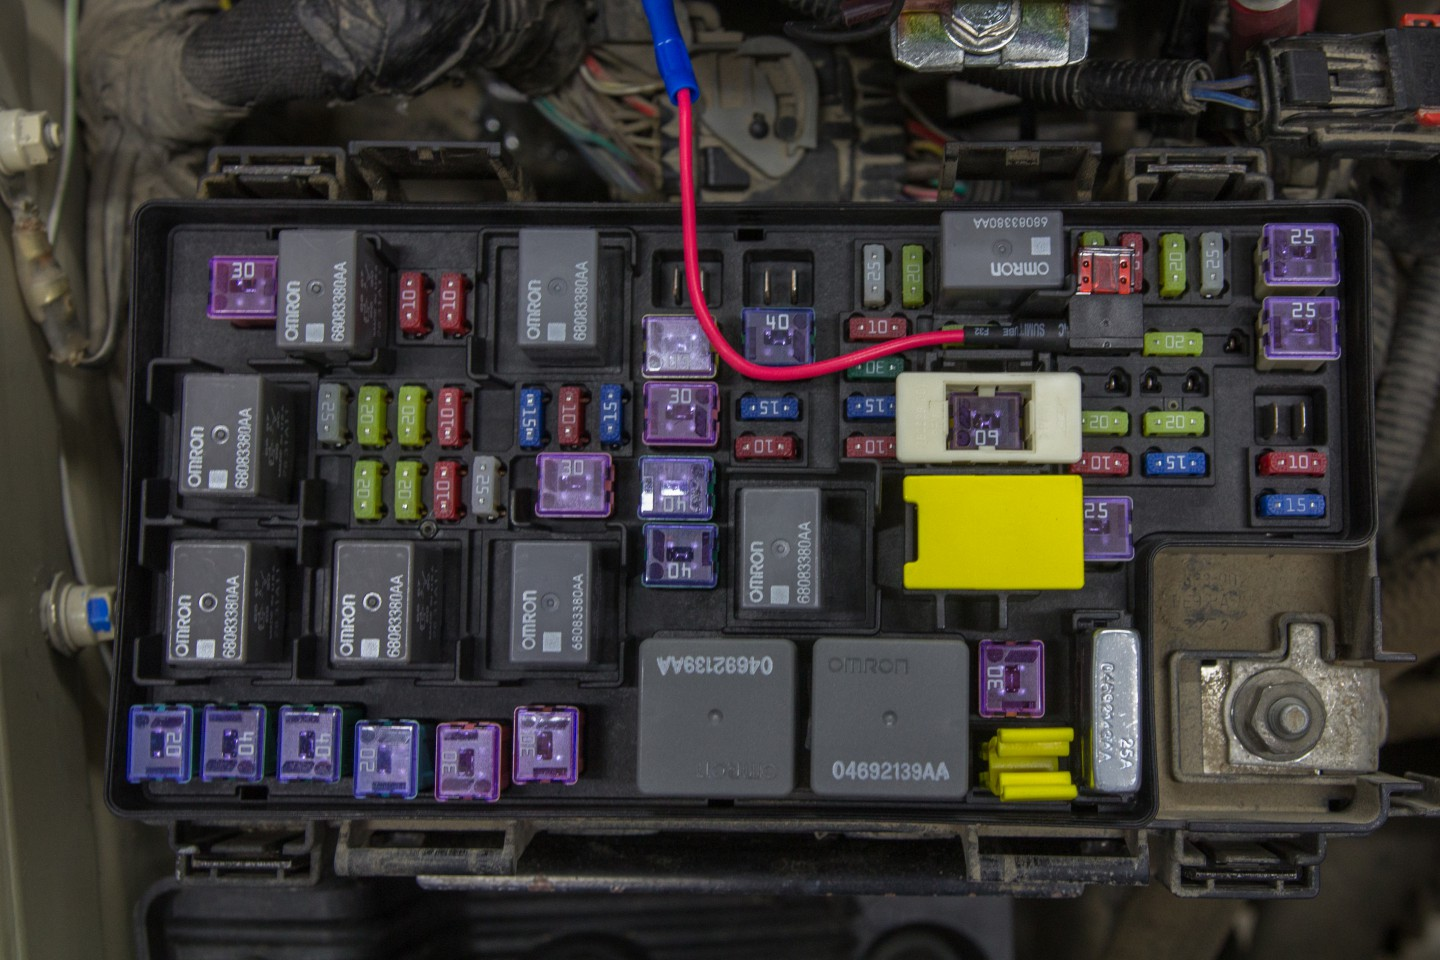 Diy Jeep Wrangler Jk Isolated Dual Batteries The Road Chose Me Positions Of Switch And Battery Were Swapped In Circuit Mini Add A Fuse Holder Box